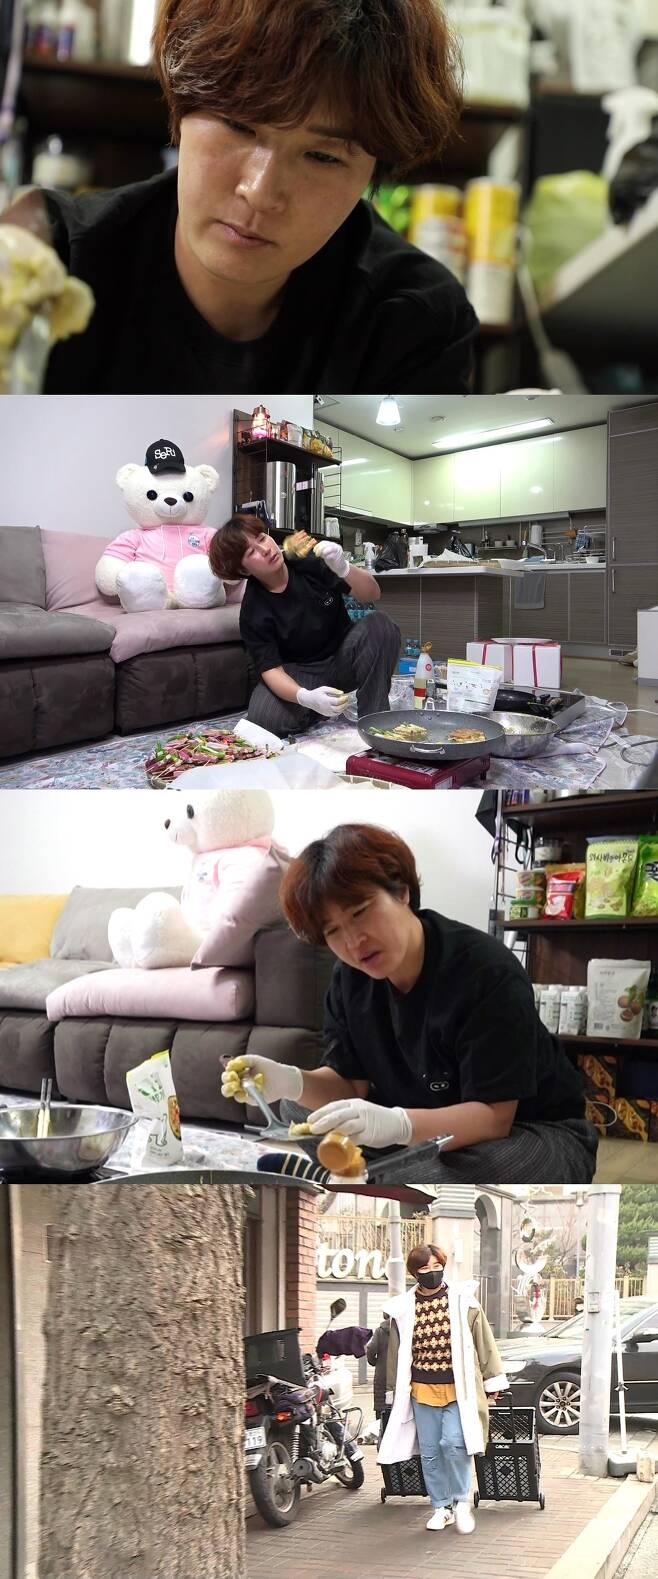 Pak Se-ri, who has a good shopping flex in the traditional market, raises his curiosity by saying that he opened a whole book alone.MBC I Live Alone (planned by Ahn Soo-young / director Huh Hang Kim Ji-woo), which is broadcasted at 11:05 pm on the 19th, will be unveiled as Pak Se-ri, who is in the infinite route of the former booty, welcomes holiday.In the photo, Pak Se-ri is walking with power with an empty cart in both hands.She is looking for a traditional market to buy ingredients for making skewers and jeons for holiday, and she is impressed with two carts, not one.Pak Se-ri reached the food corner by watching the snowy market foods and showed a unique flex like Big hand Sister.While I was wondering how much material would be contained in the two carts, Pak Se-ri, who returned home after the storm shopping, went out to fix the material without any break.After that, Pak Se-ri, who showed confidence in the previous booting than anyone else, hopes that he has demonstrated his former booting skill without clogging.Pak Se-ri, who was passionate about mailing, showed even flour tuhon, including taking the sacrifice of bangs.In particular, Big Hand Sister Pak Se-ri appeared as if he had set up a whole collection with various pre-eminent pre-eminent pink sausages and a large material on skewers to create a special skewer.In addition, Pak Se-ri, who repeatedly sat on the floor and sat down to send a war, was going to laugh at the unexpected lower body movement.The dieting Pak Se-ri is making a sudden rationalization, saying, Working and eating is not fat, as a natural tasting at the same time as the whole meal is poured.Also, I am curious to hear that a guest comes to the house of Pak Se-ri who finished the post.To the guest who appeared, Pak Se-ri is the back door that sent a huge amount of war and gave a warm heart.Pak Se-ri said, Holiday is good. He also expressed his special affection for the holiday, which is only twice a year, and added to the question of why.Big hand Sister Pak Se-ris traditional market flex and the former Butchigi Infinite Root scene can be found through I Live Alone broadcasted at 11:05 pm on the day.